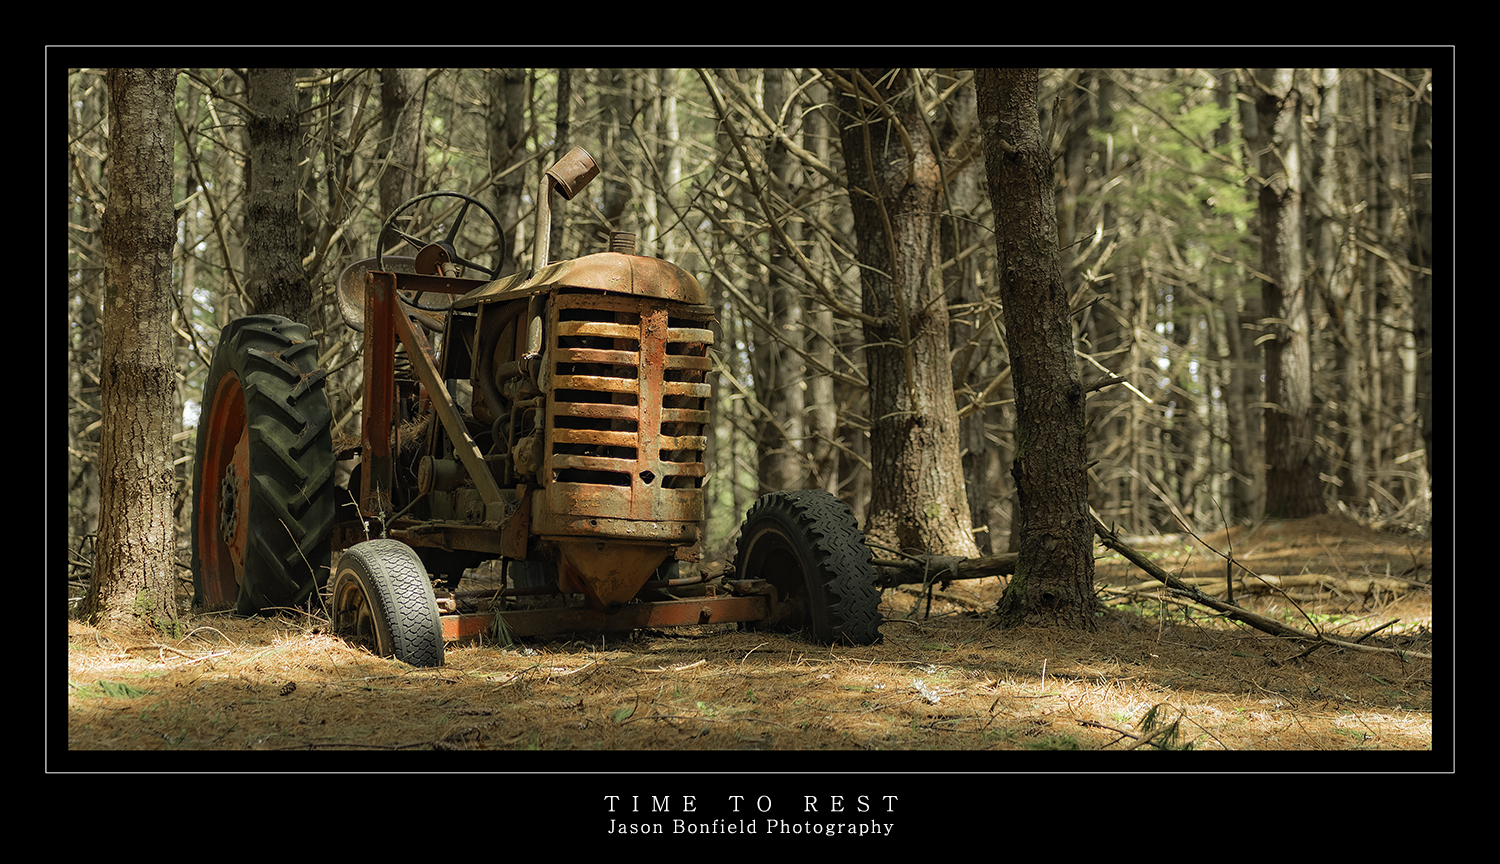 An old derelict and disused red farm tractor left ot rust away in an old pine forest bathed with soft light filtering through the trees